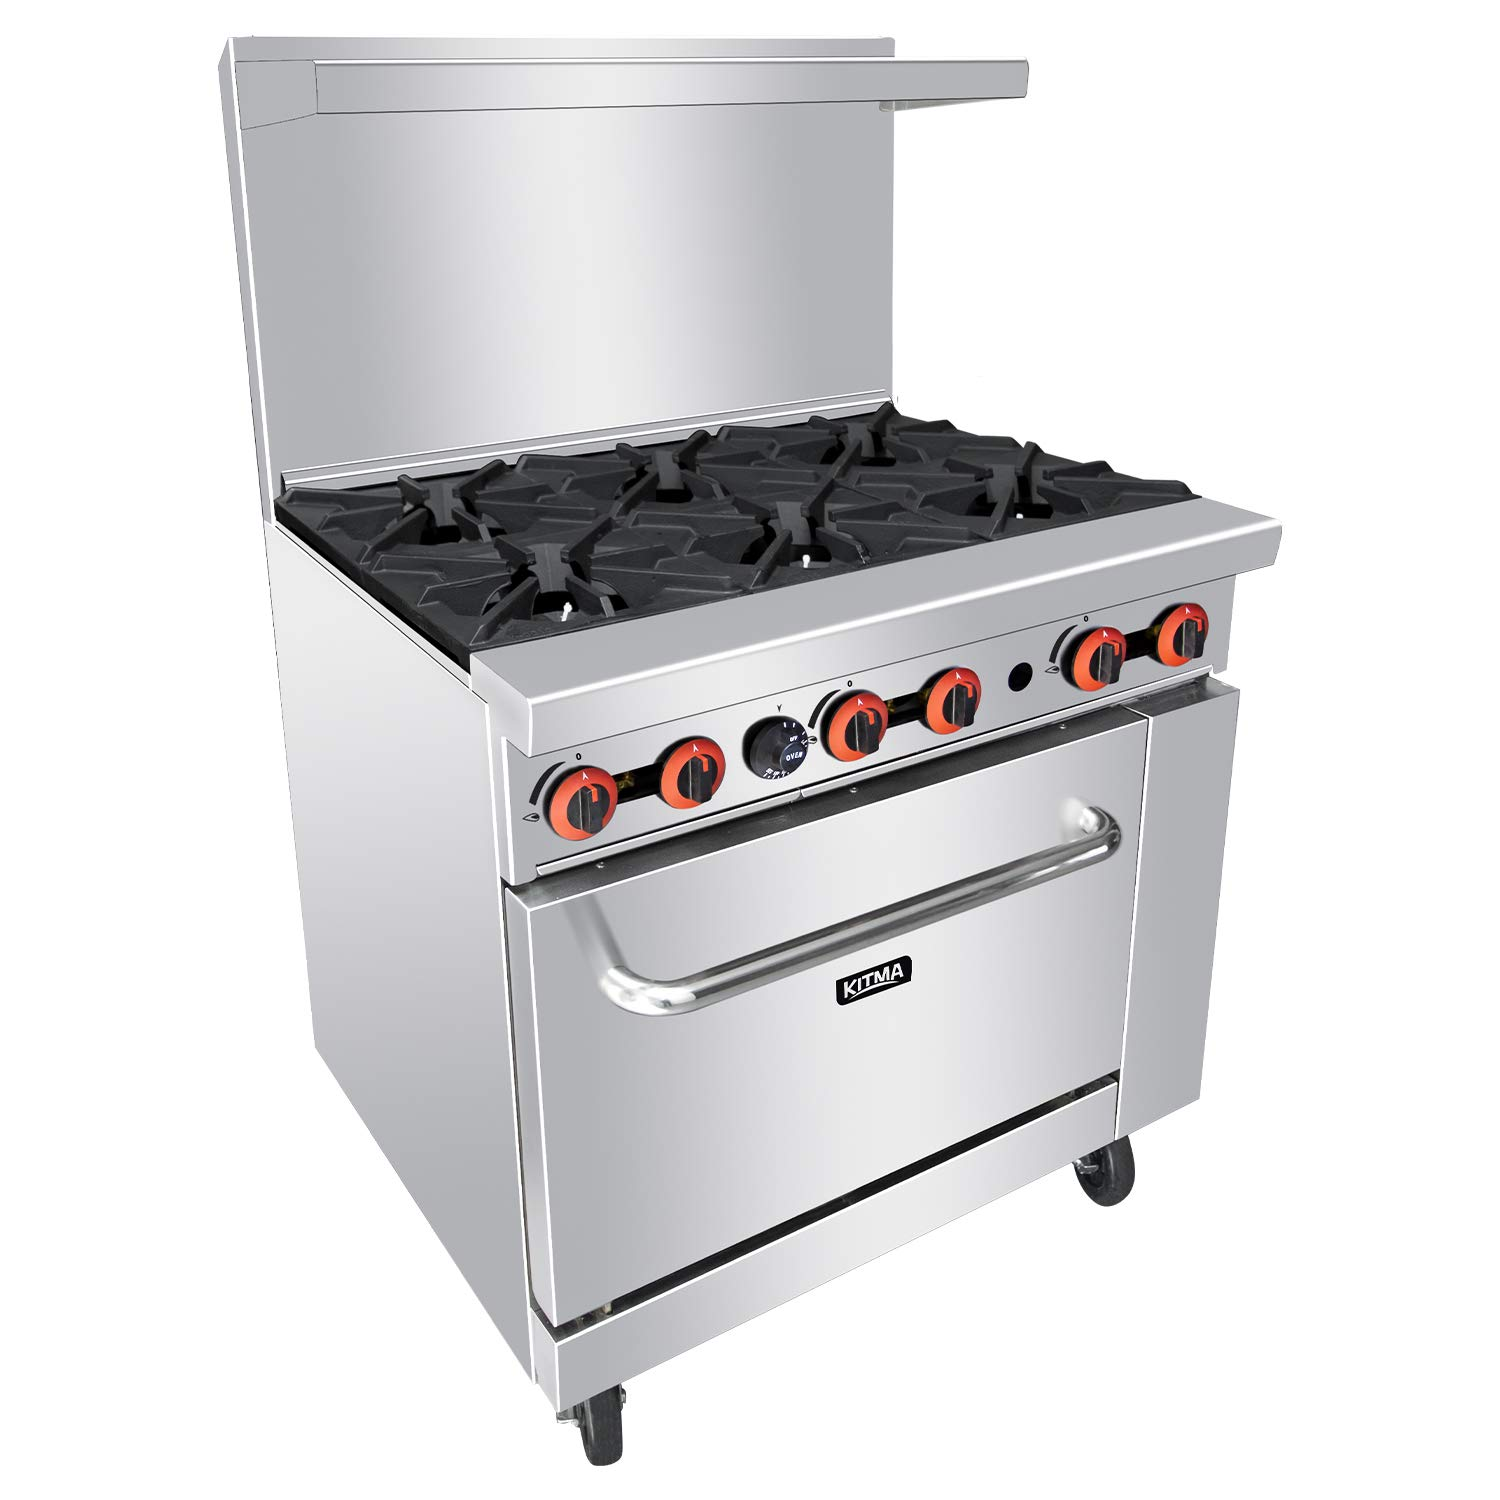 Heavy Duty 36''Gas 6 Burner Range With Standard Oven - Kitma Liquid Propane Cooking Performance Group for Kitchen Restaurant, 165,000 BTU